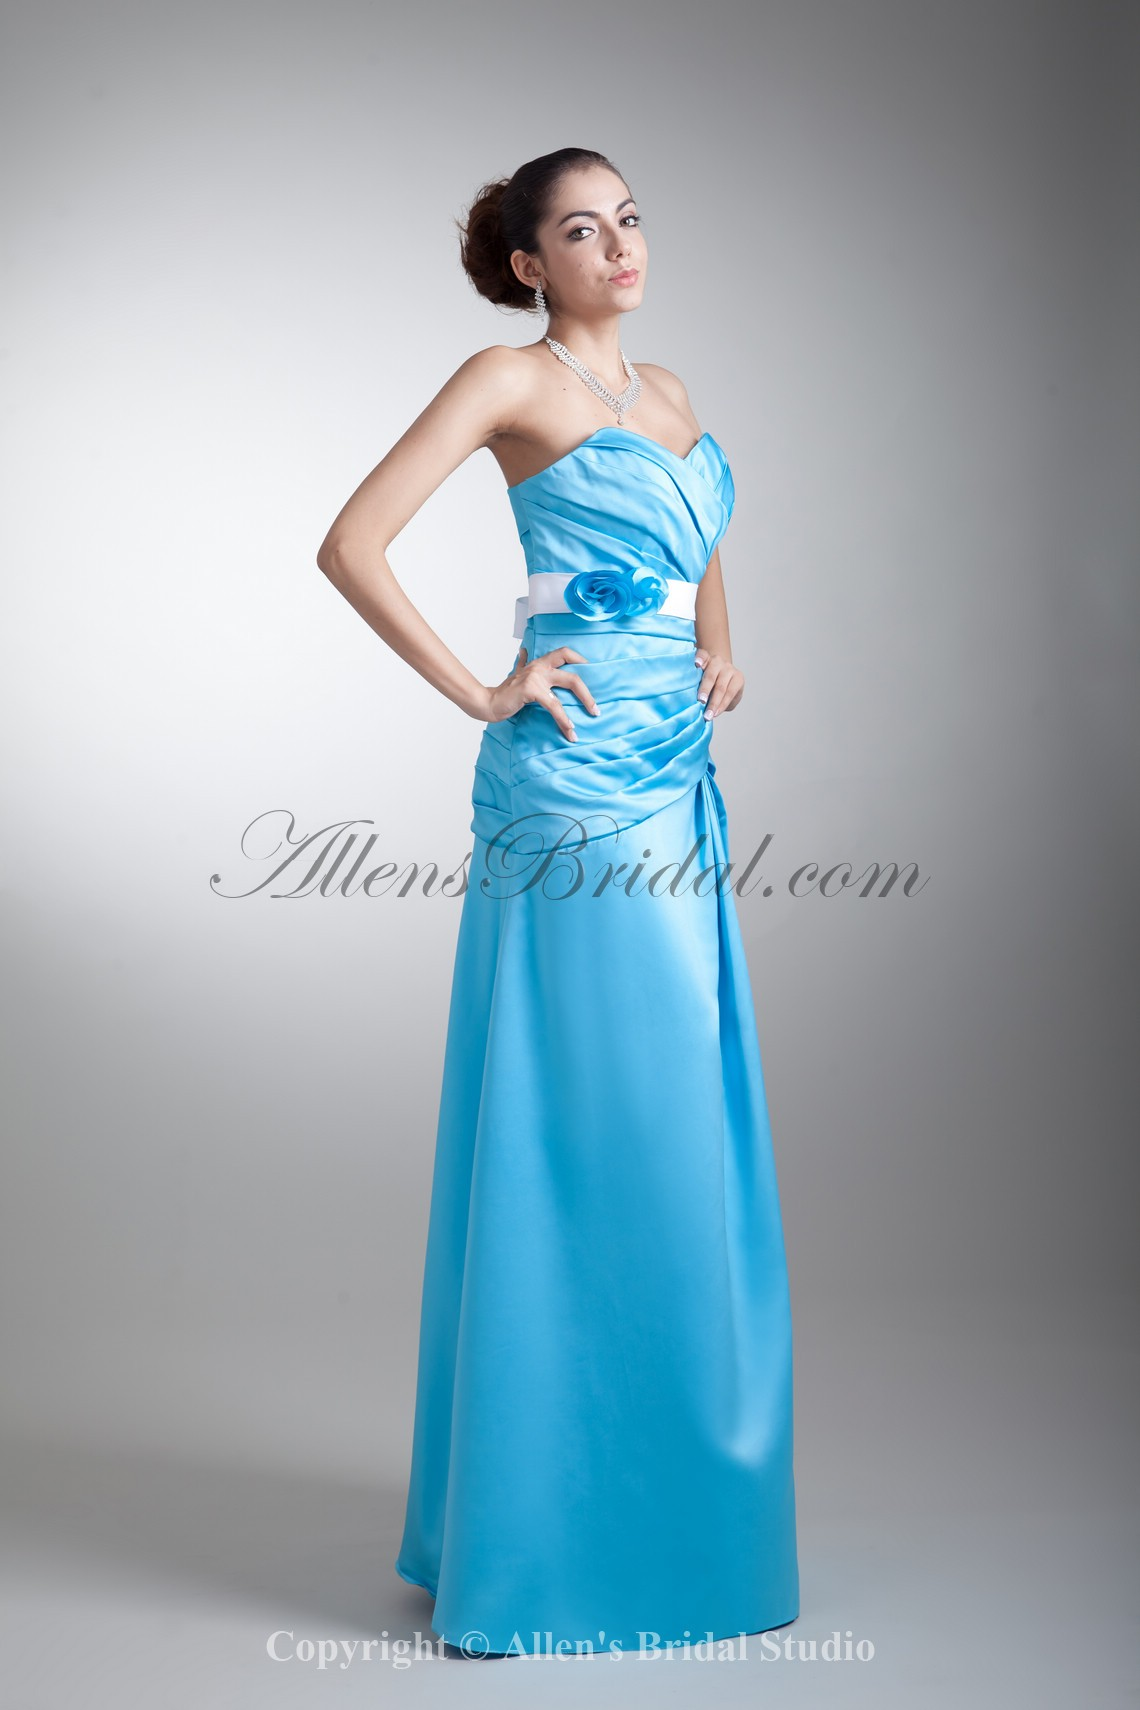 /757-6065/satin-sweetheart-neckline-floor-length-a-line-flowers-prom-dress.jpg